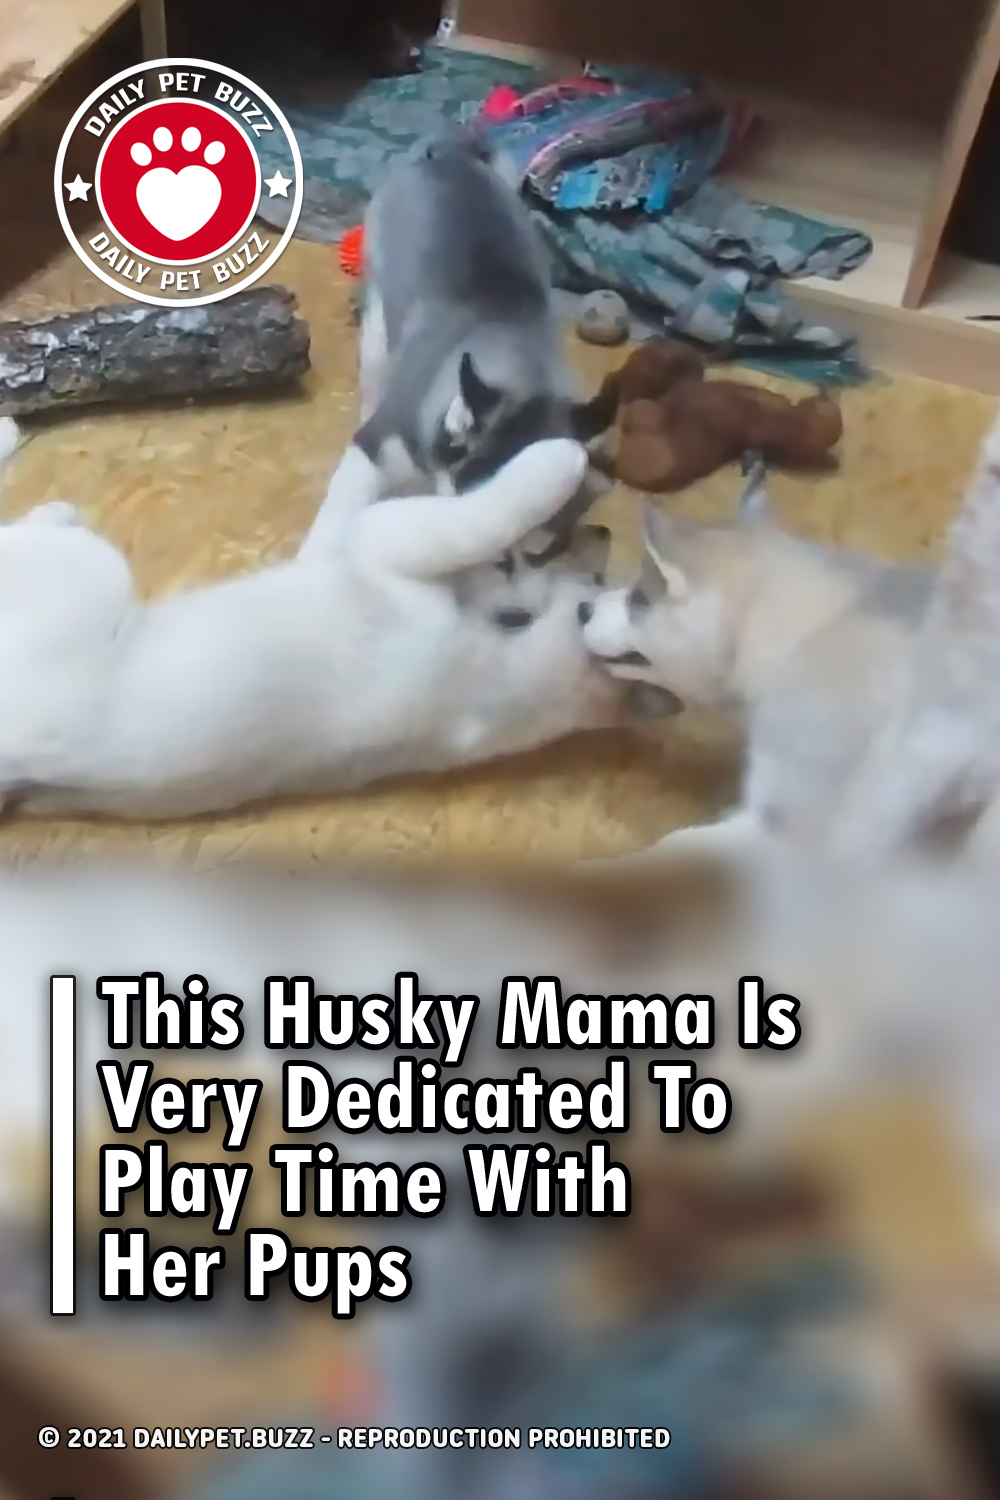 This Husky Mama Is Very Dedicated To Play Time With Her Pups